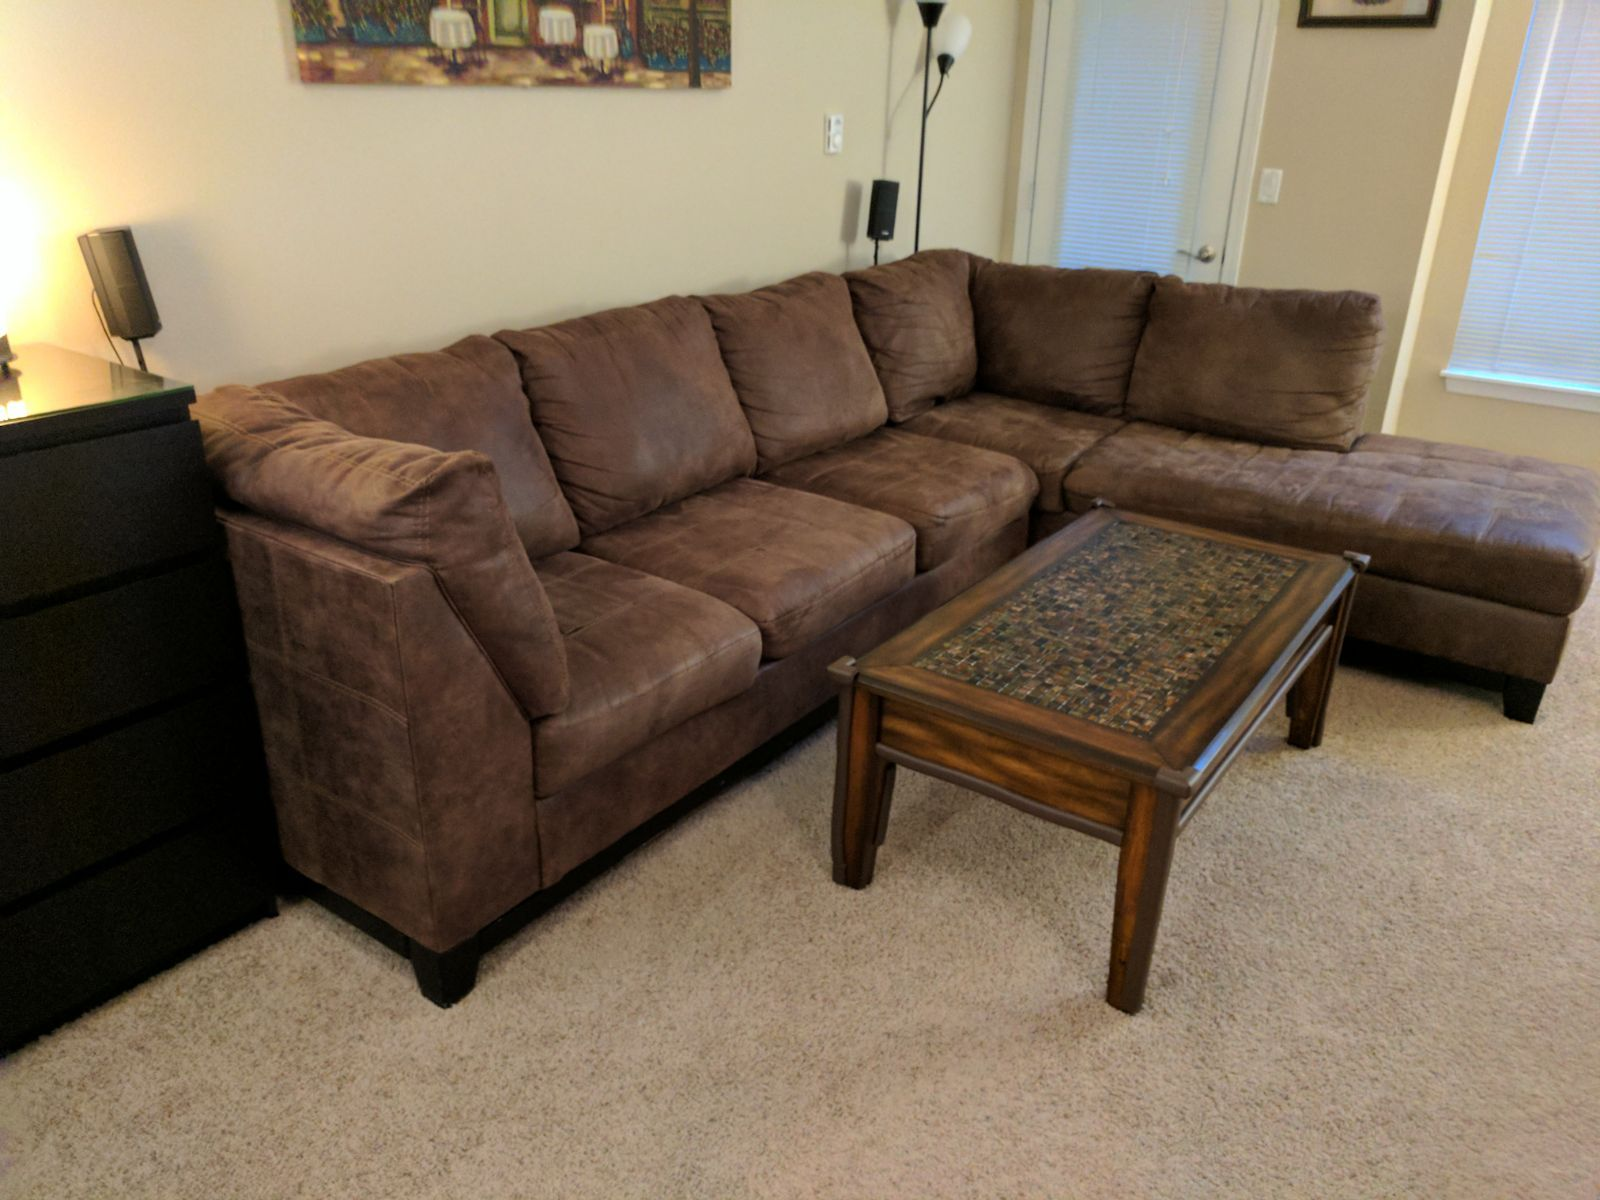 Furniture Stores In Bellevue Ohio